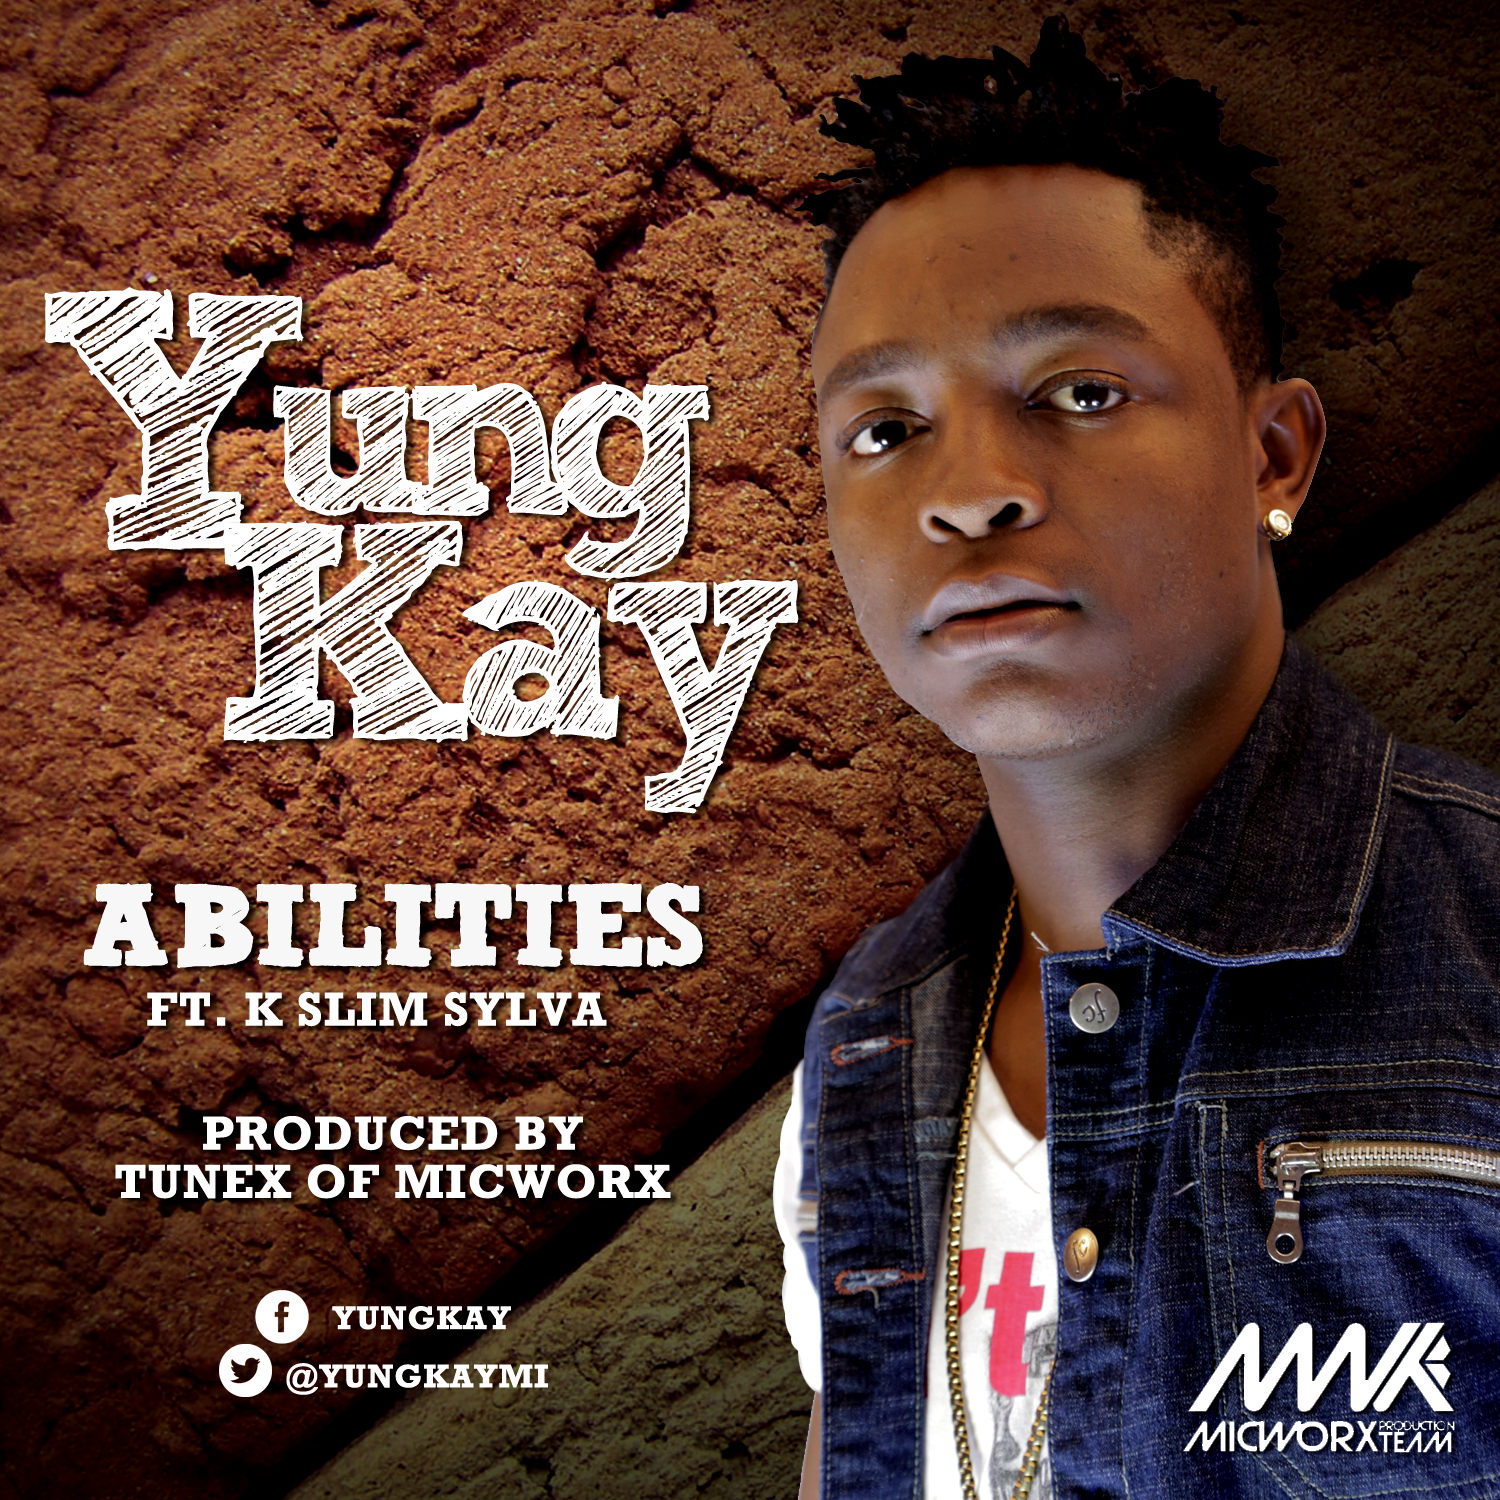 Yung Kay Abilities